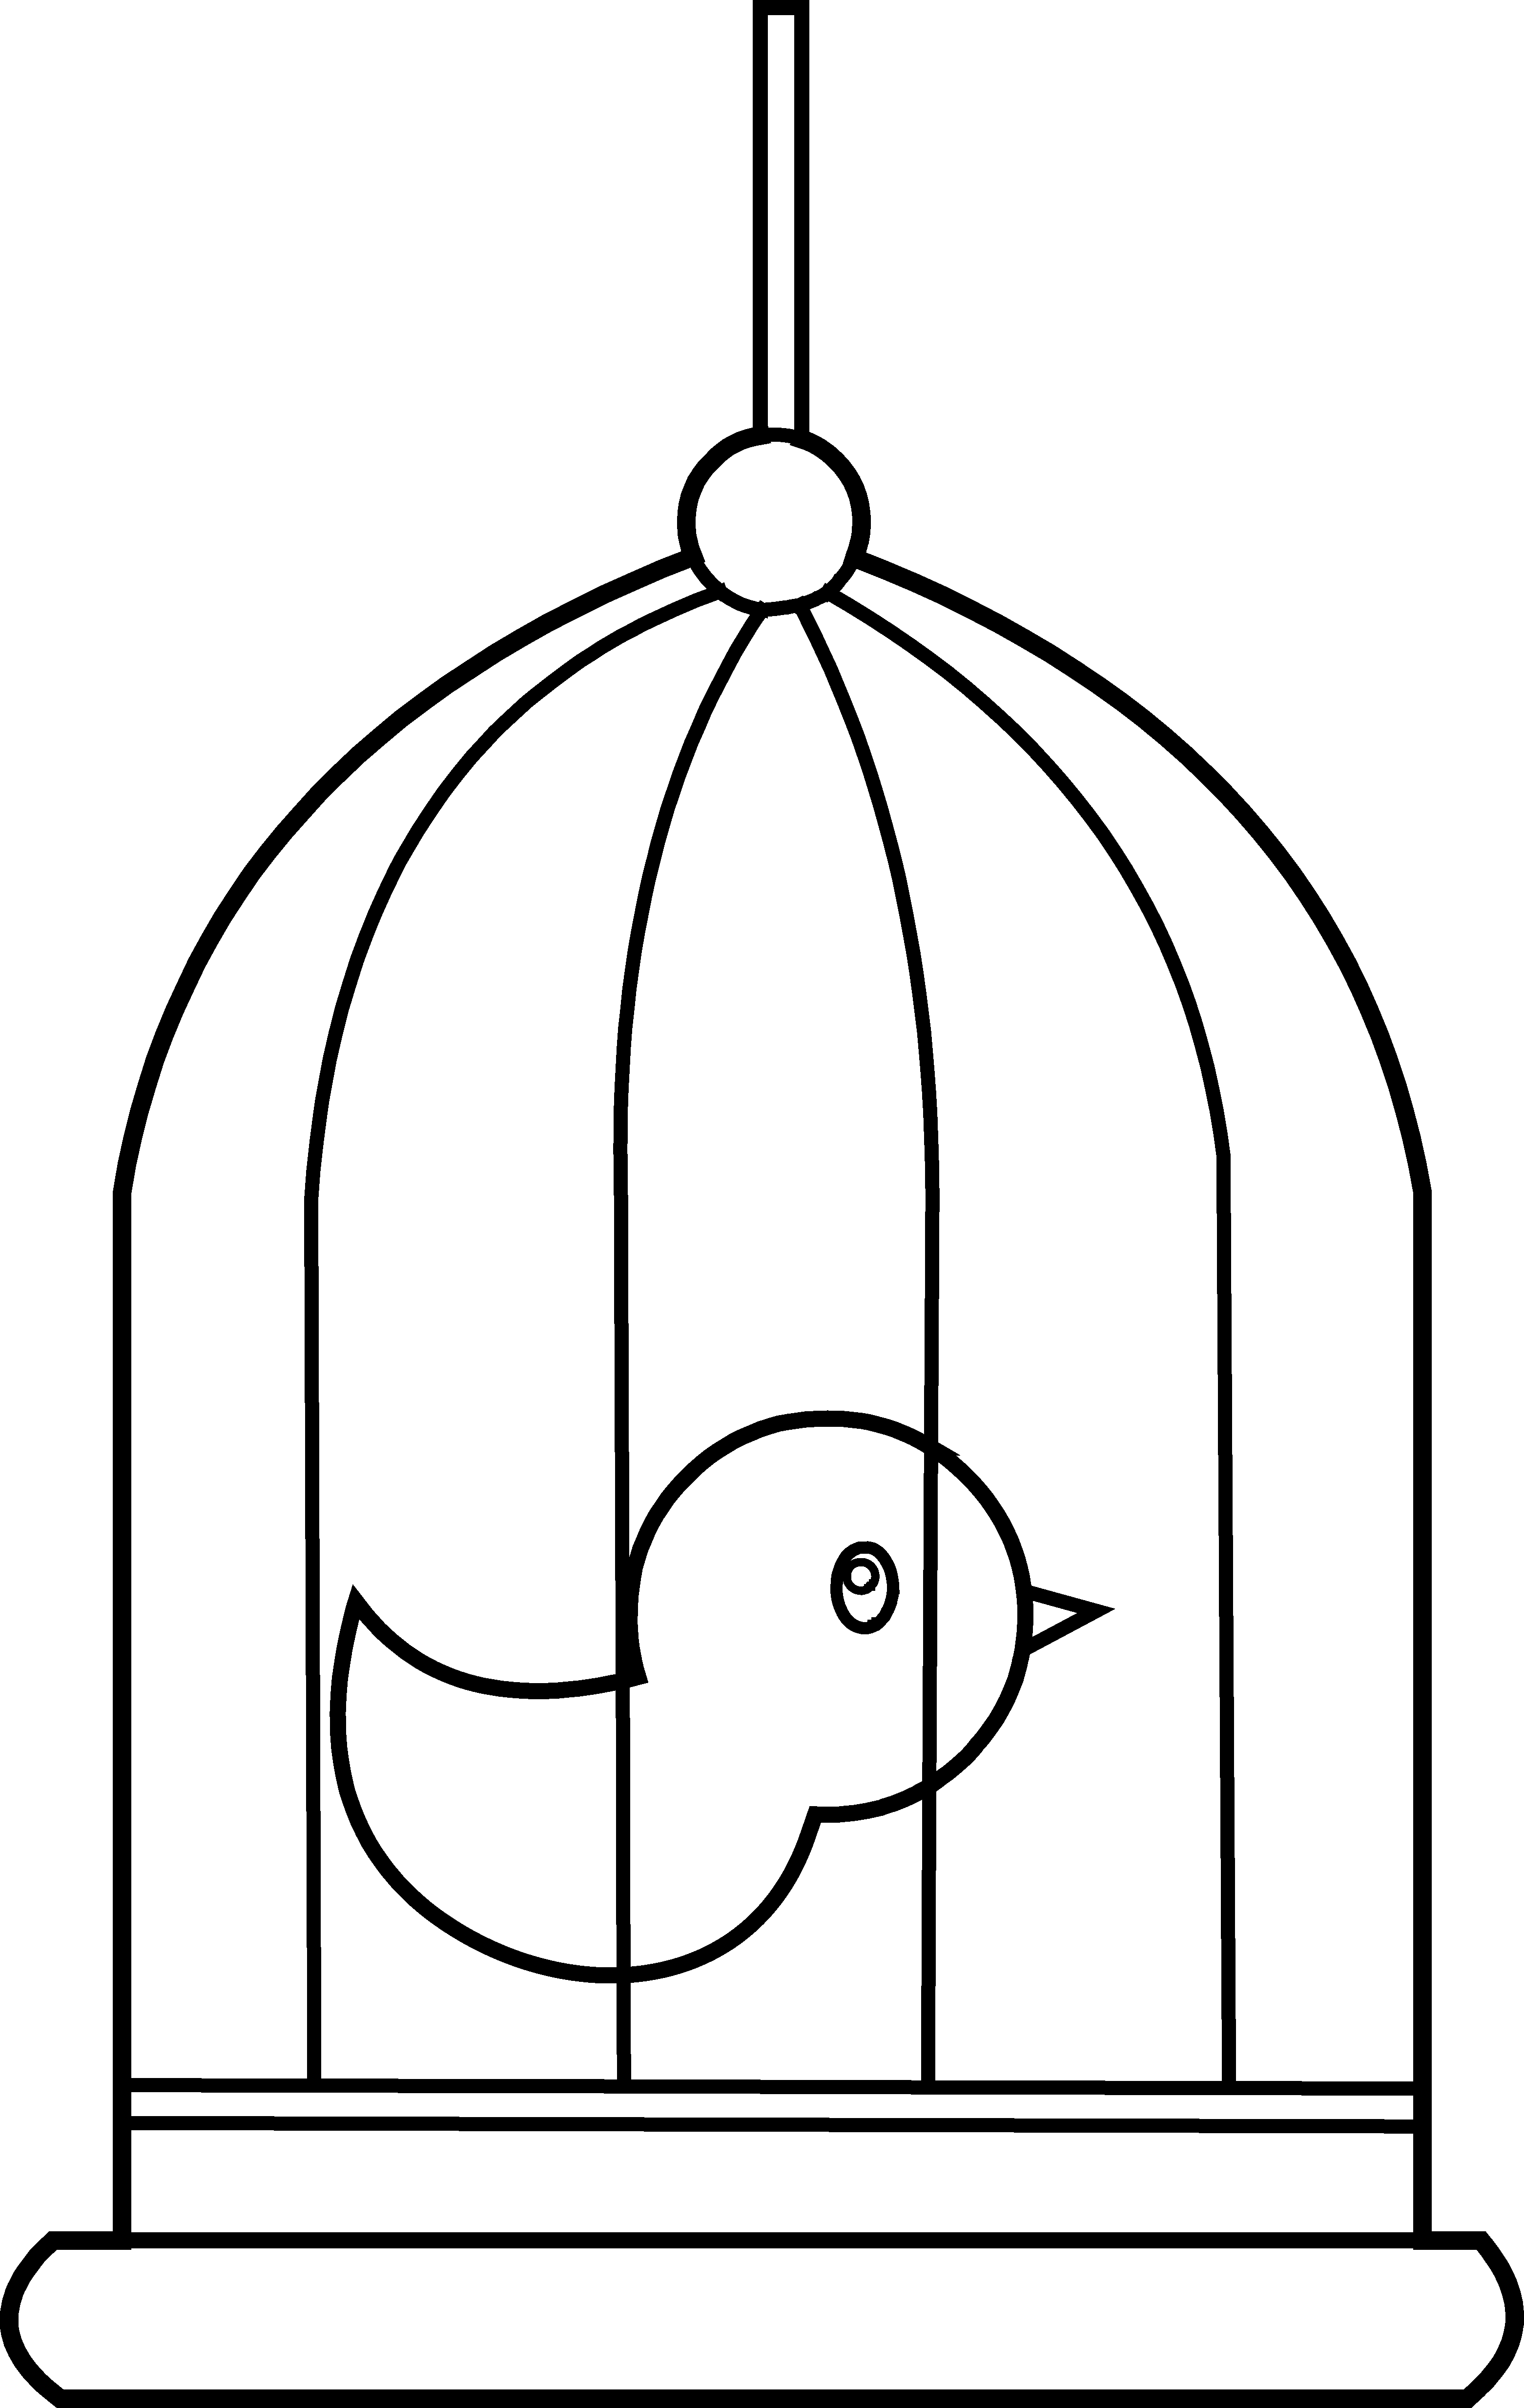 Bird cage clipart 20 free Cliparts | Download images on ...